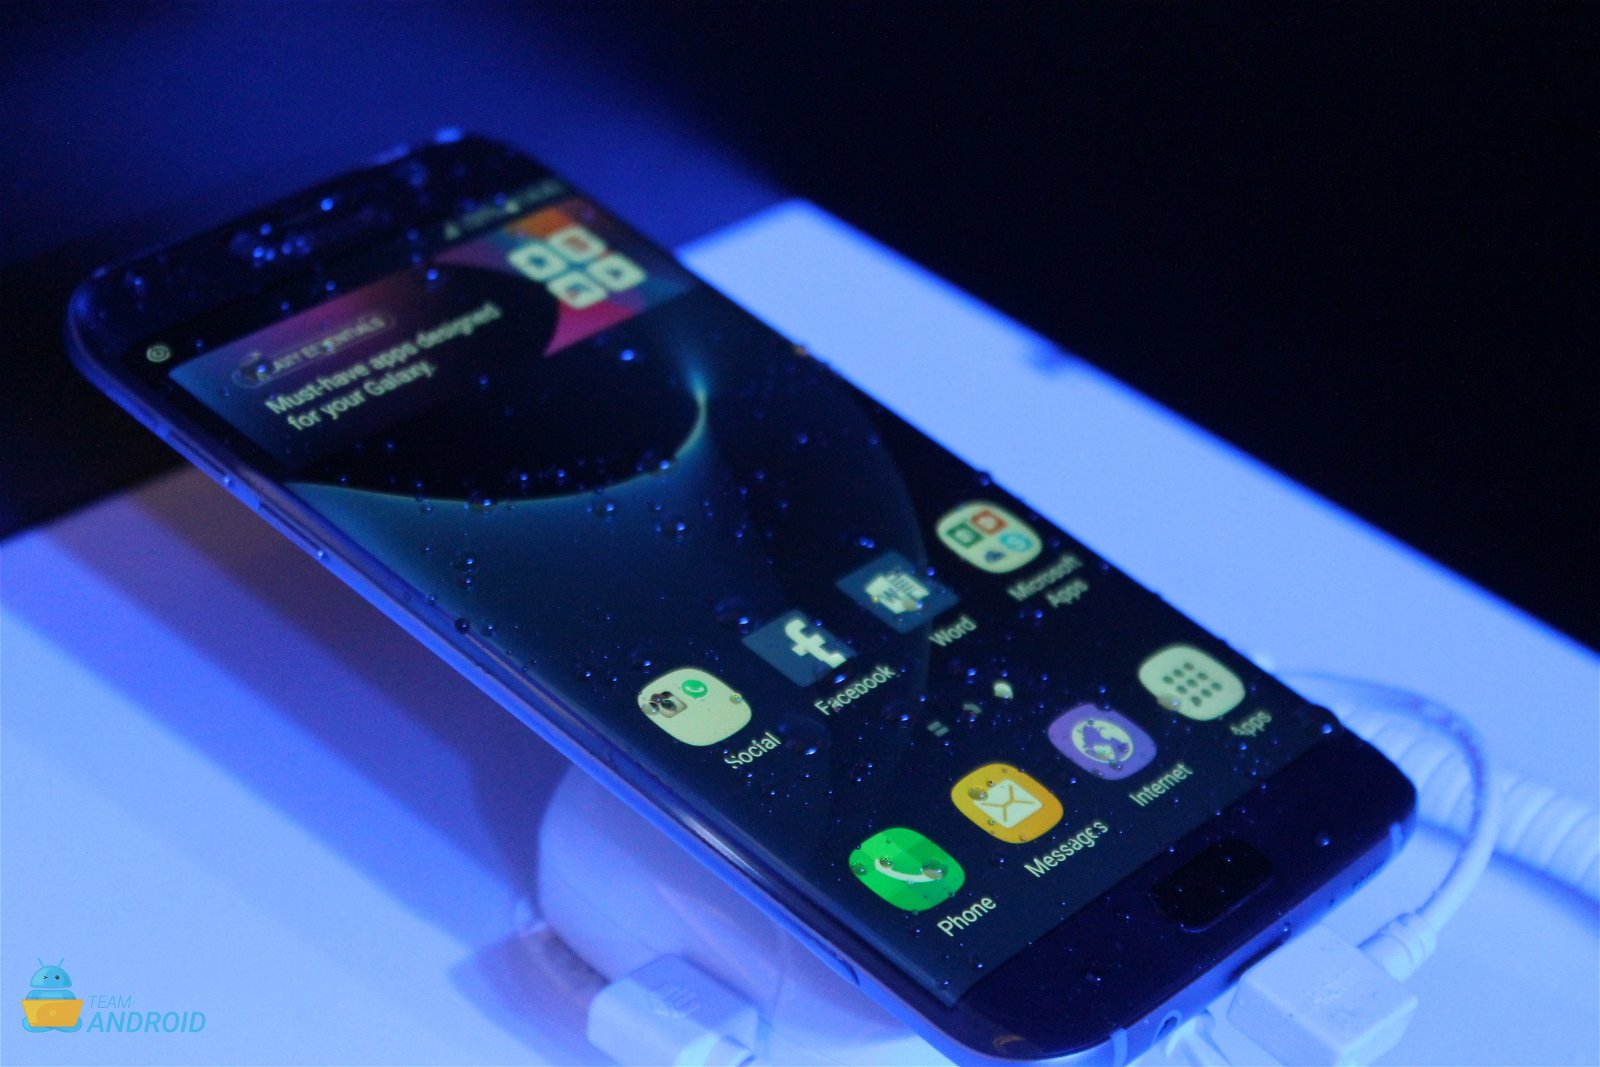 HOW TO: Install Galaxy S7 Edge TWRP Recovery - Tutorial / Guide